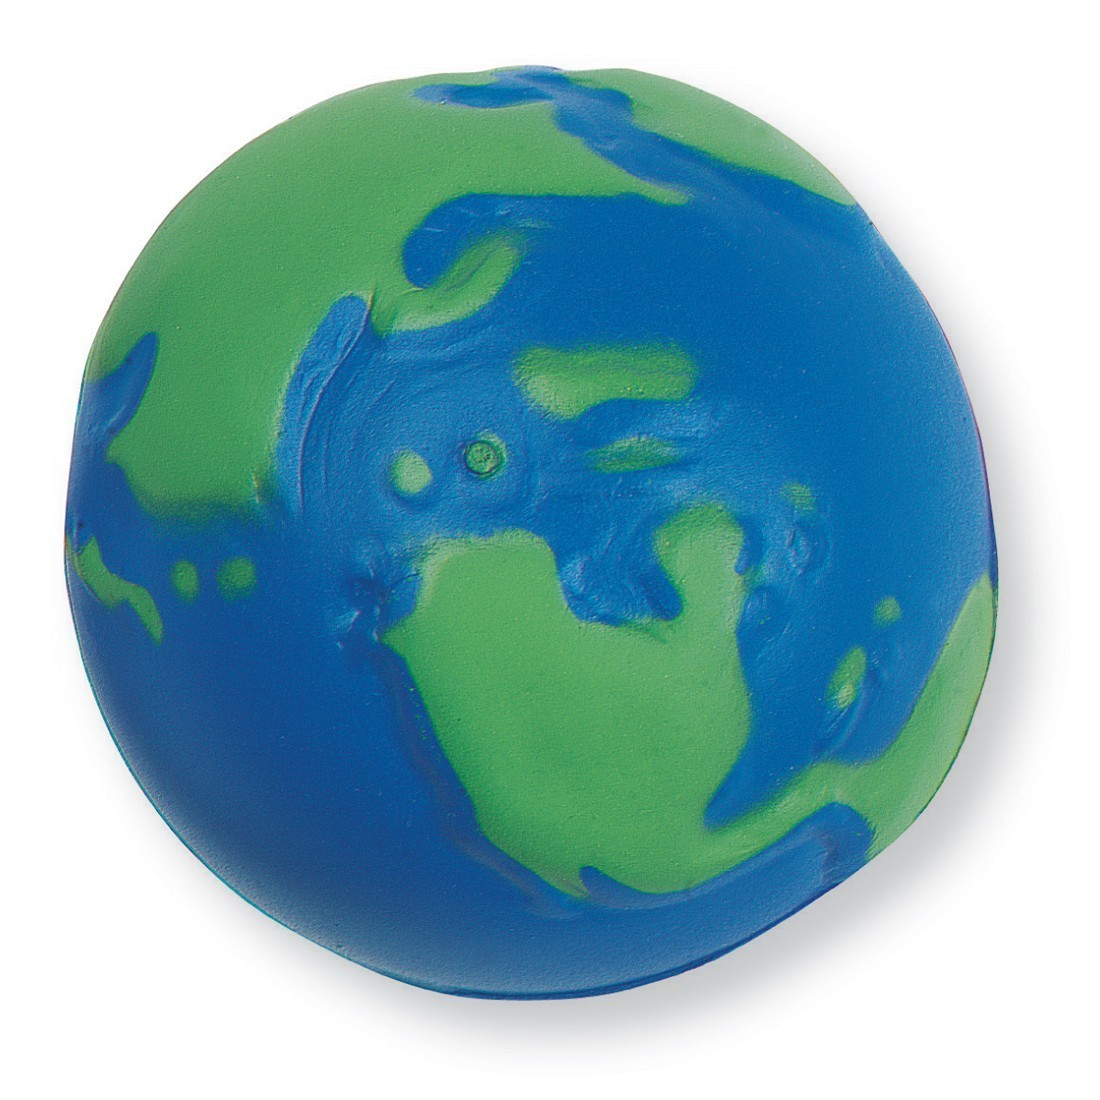 Earth Shaped Stress Balls [image]